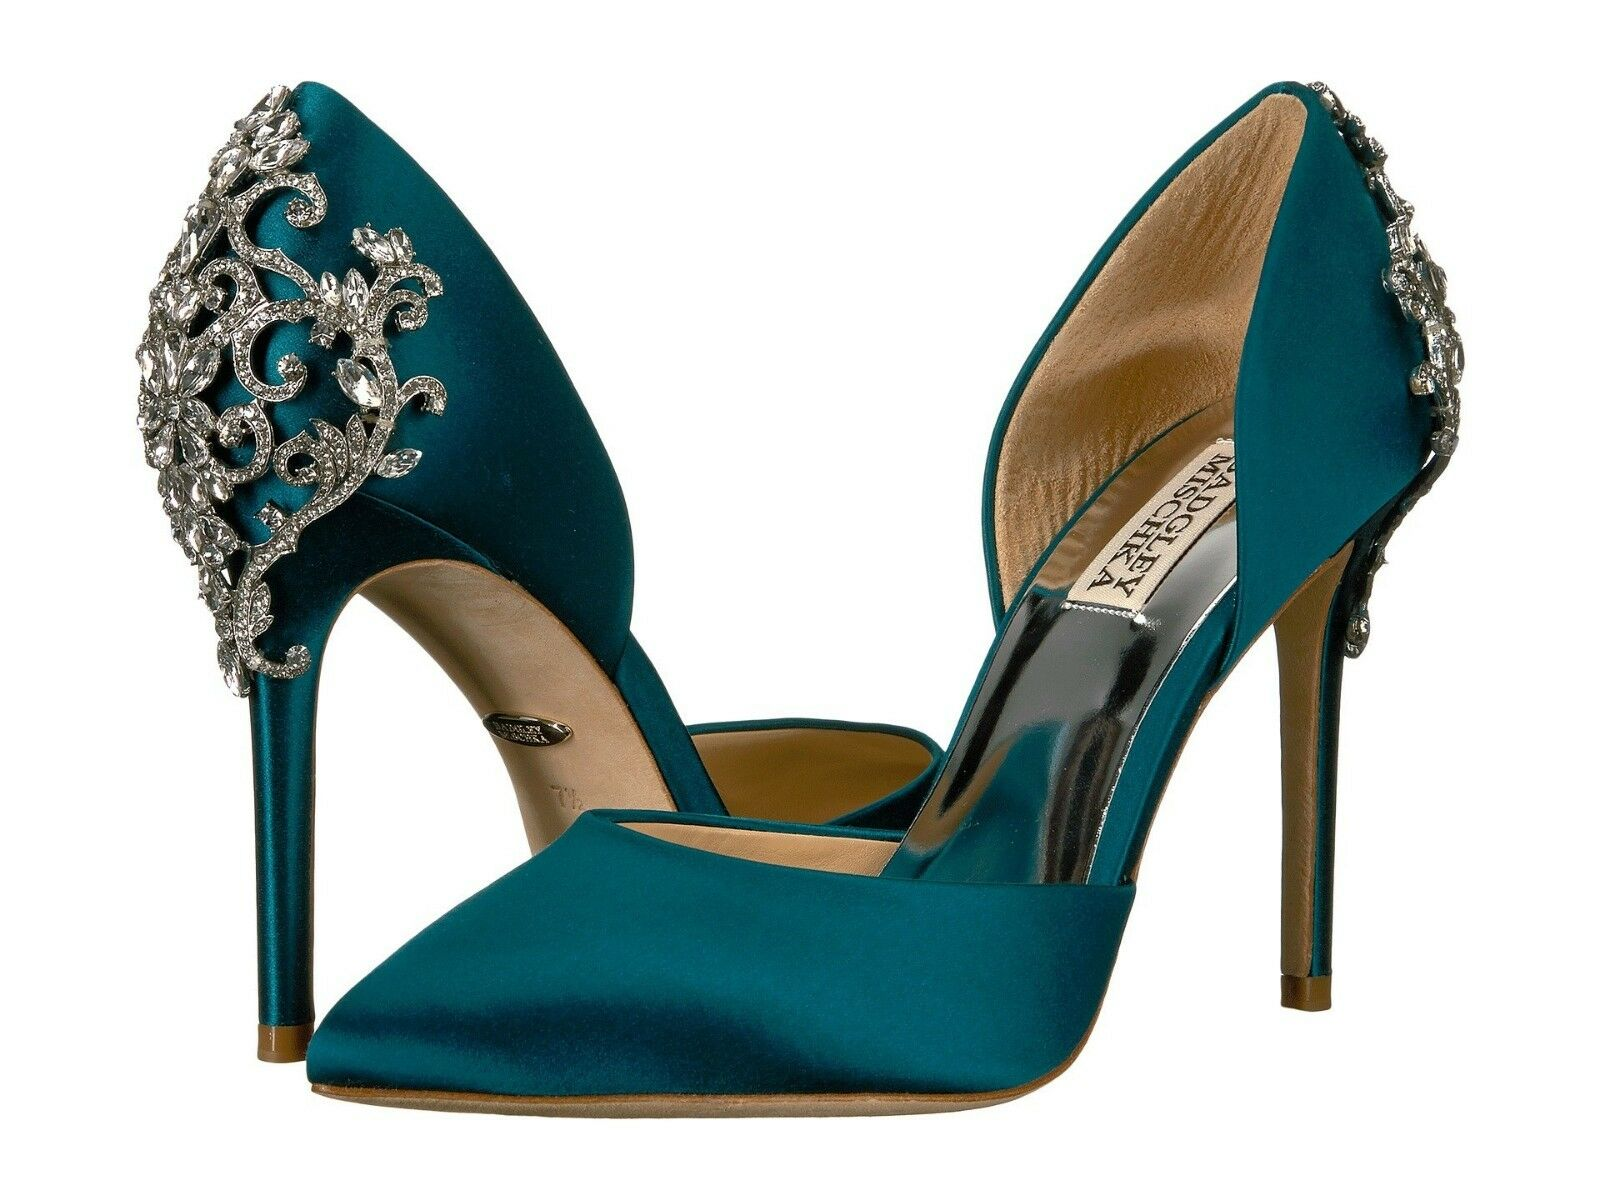 Badgley Mischka KARMA Satin Pump Crystal Embellished Heel verde 5.5  225 Nib